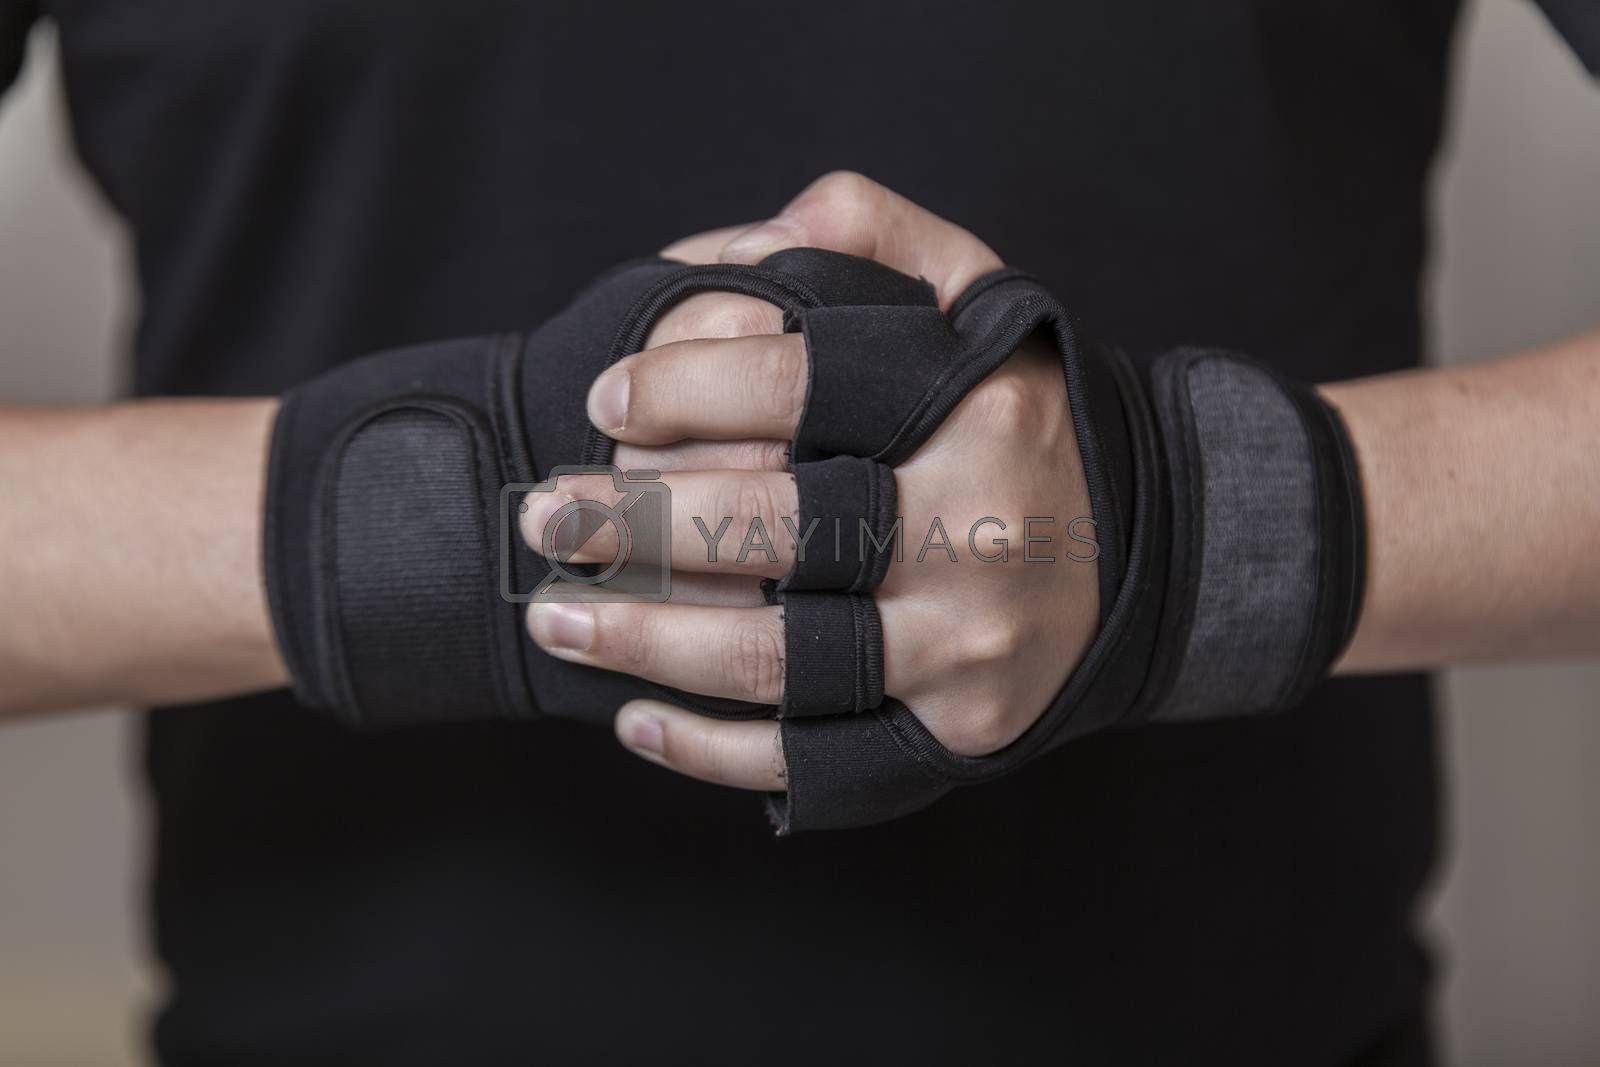 Man's hands put on sports gloves for a gym